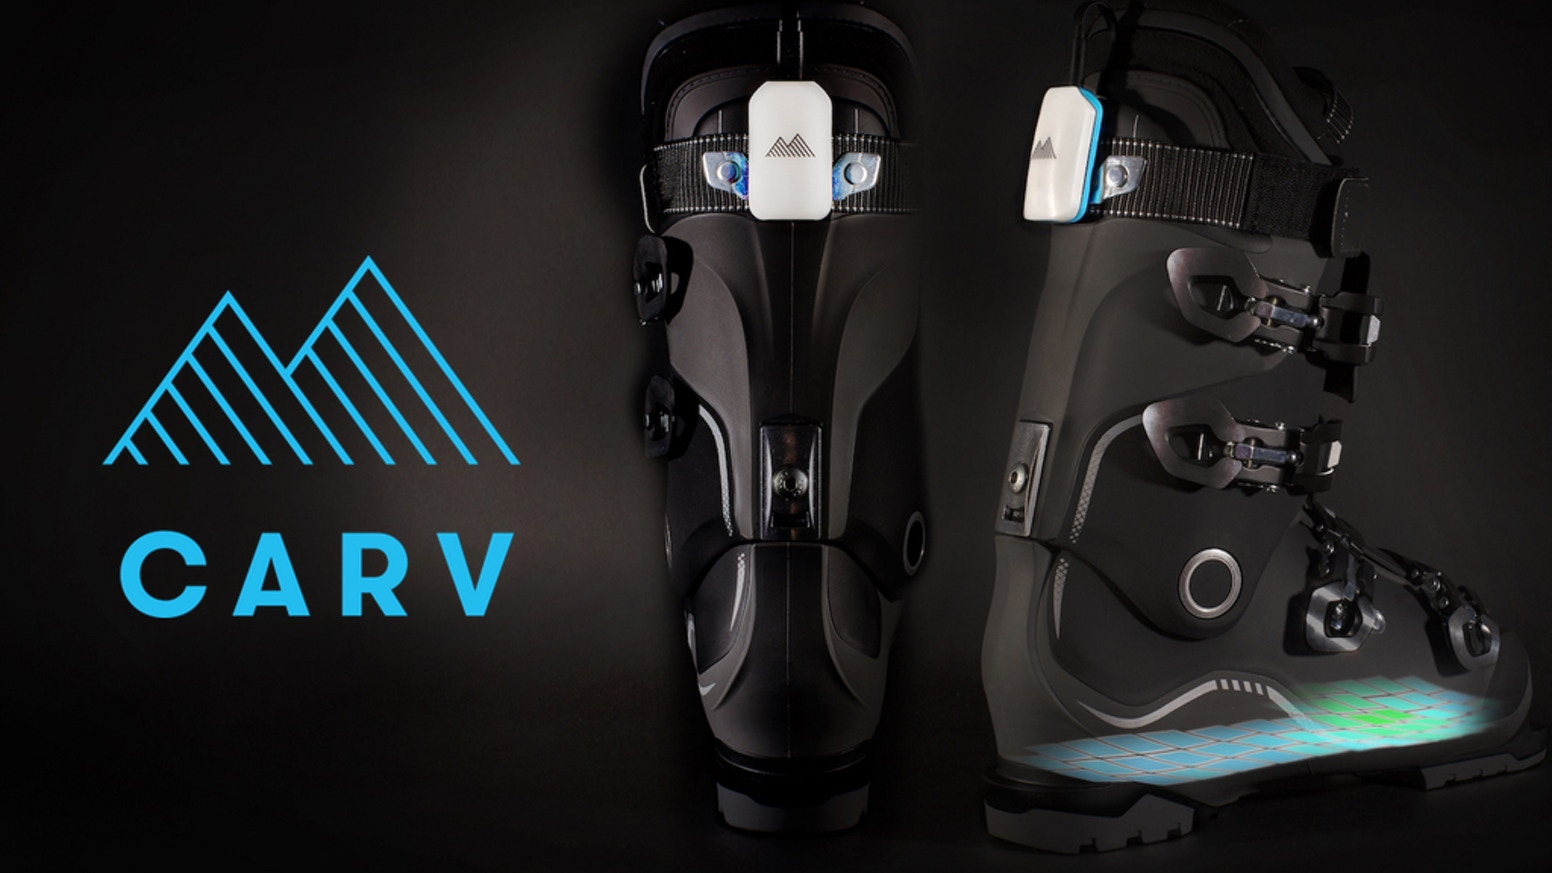 Carv The Worlds First Wearable That Helps You Ski Better By Cut Engineer Iron Safety Boots Blue Leather Motionmetrics Kickstarter